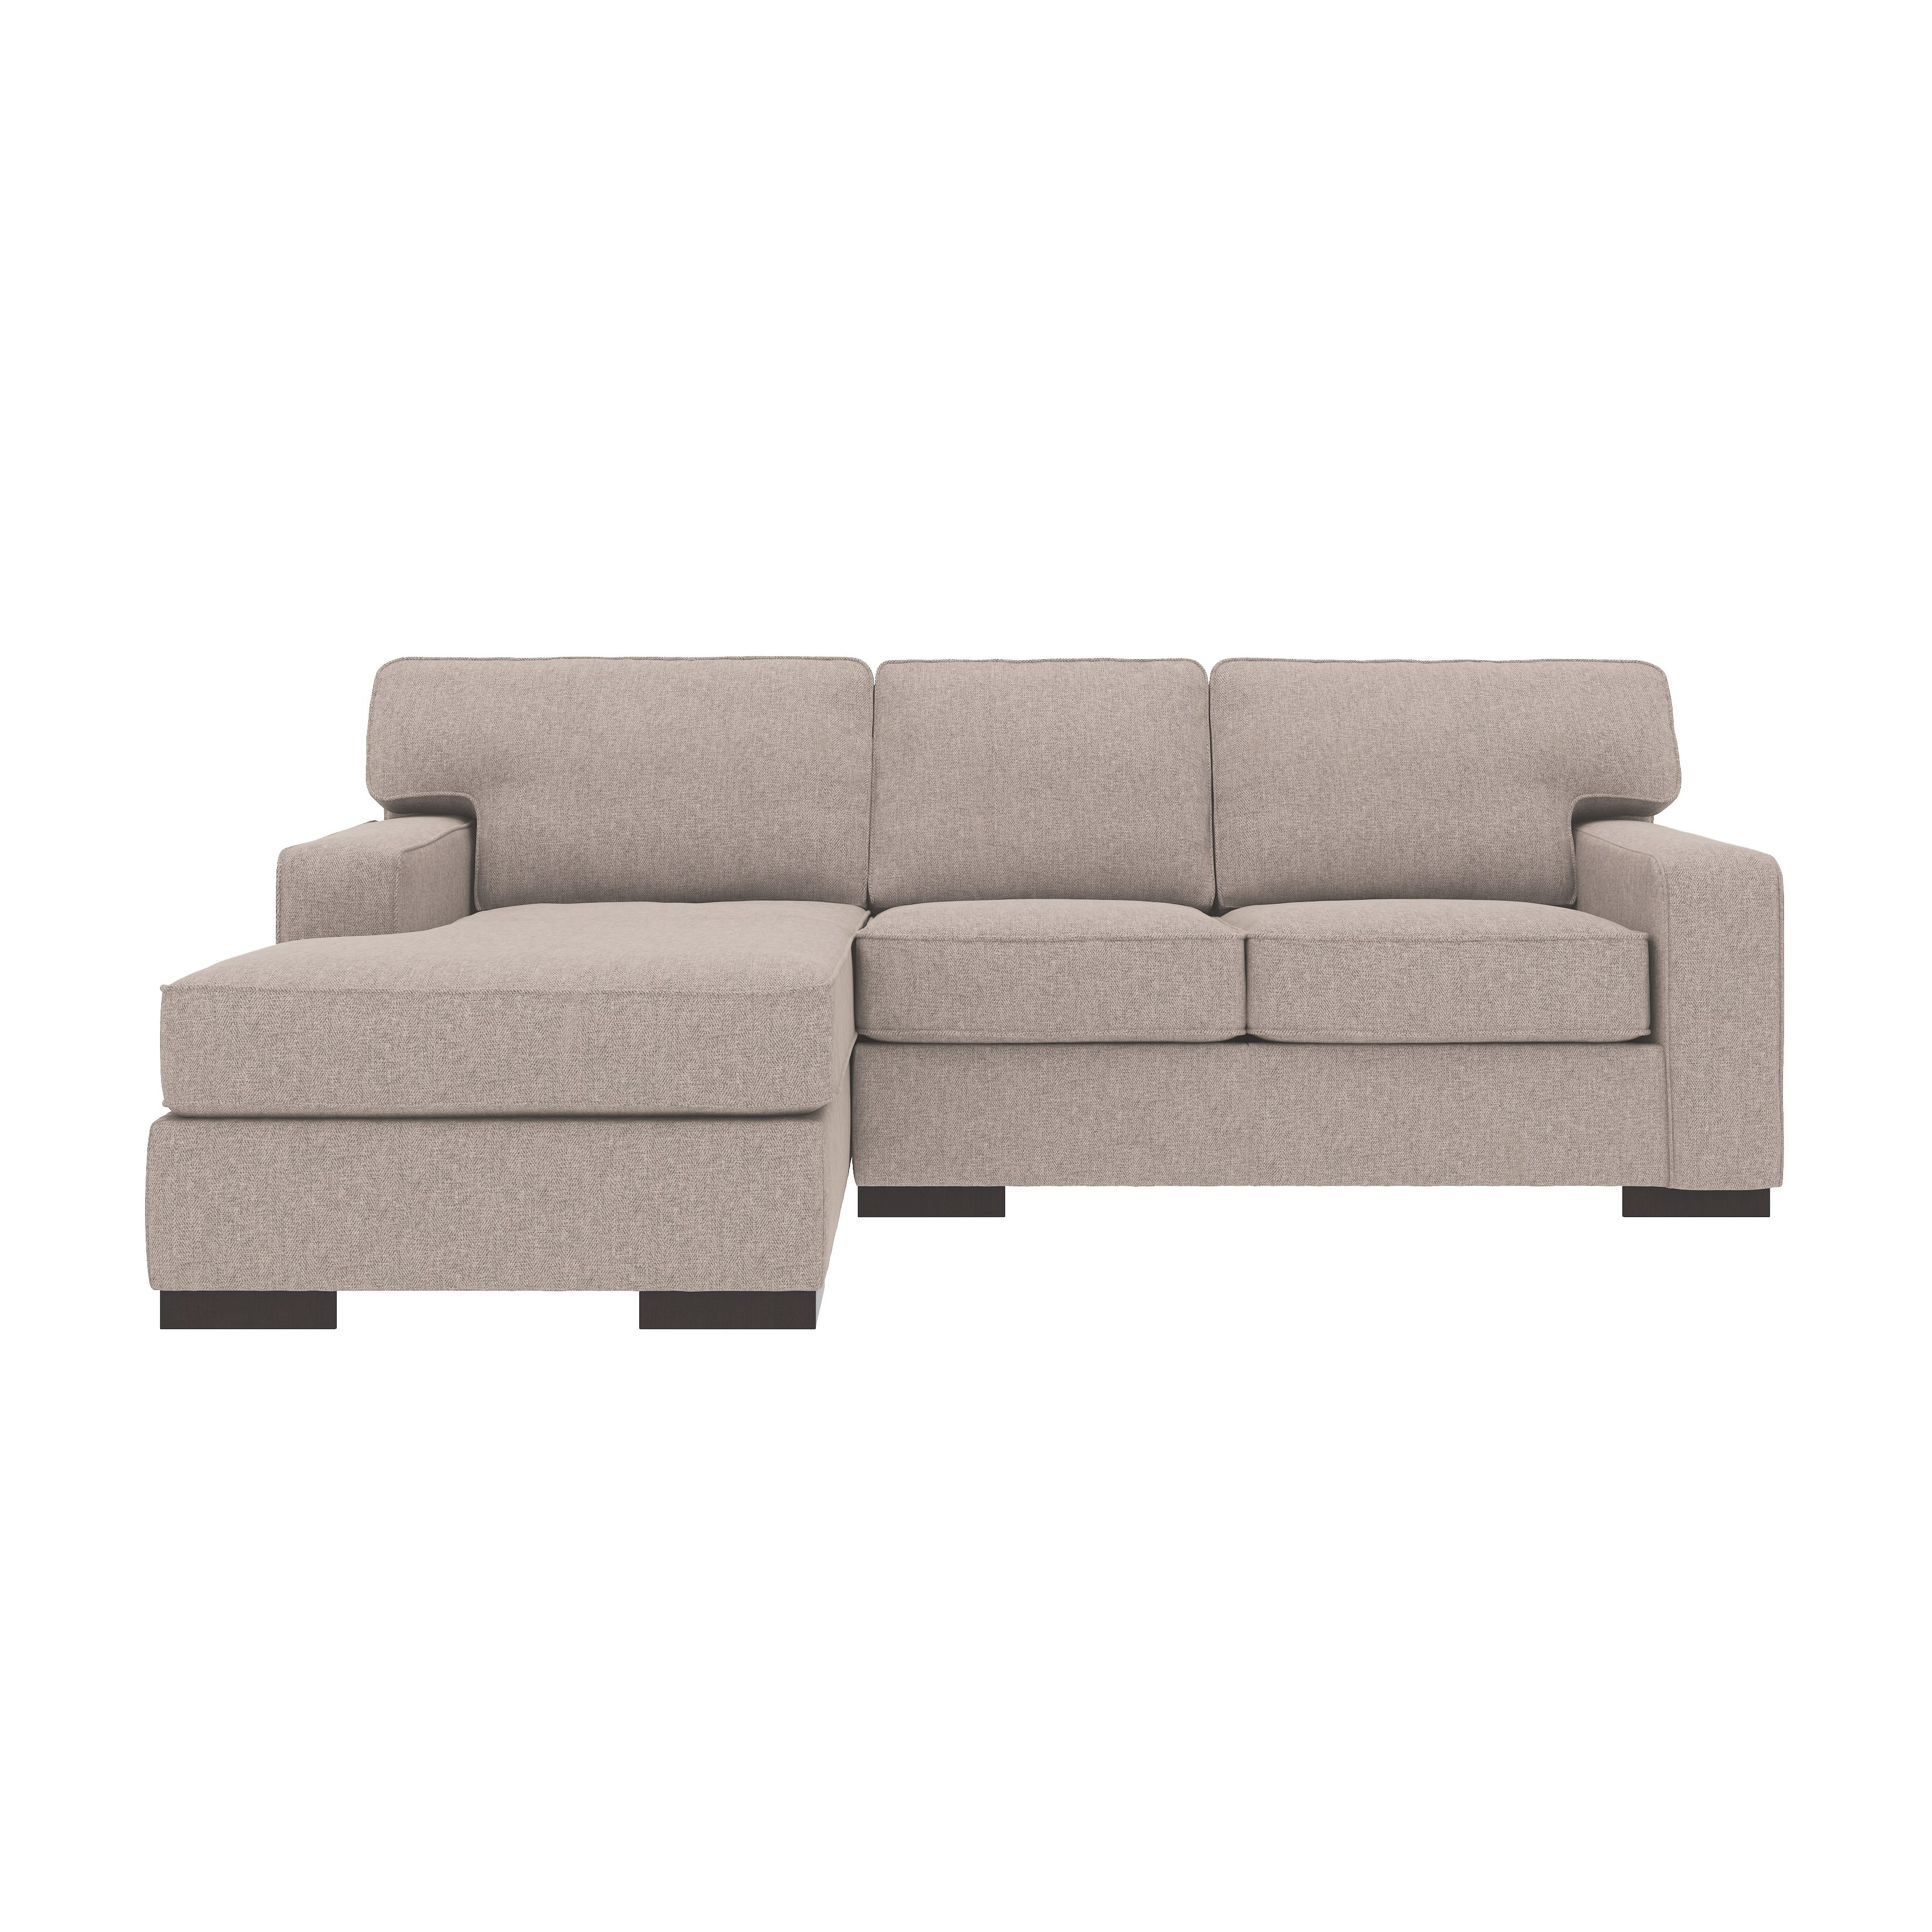 Ashlor Nuvella 2 Piece Sectional With Chaise Ashley Furniture Homestore Furniture Cool Couches Cushions On Sofa